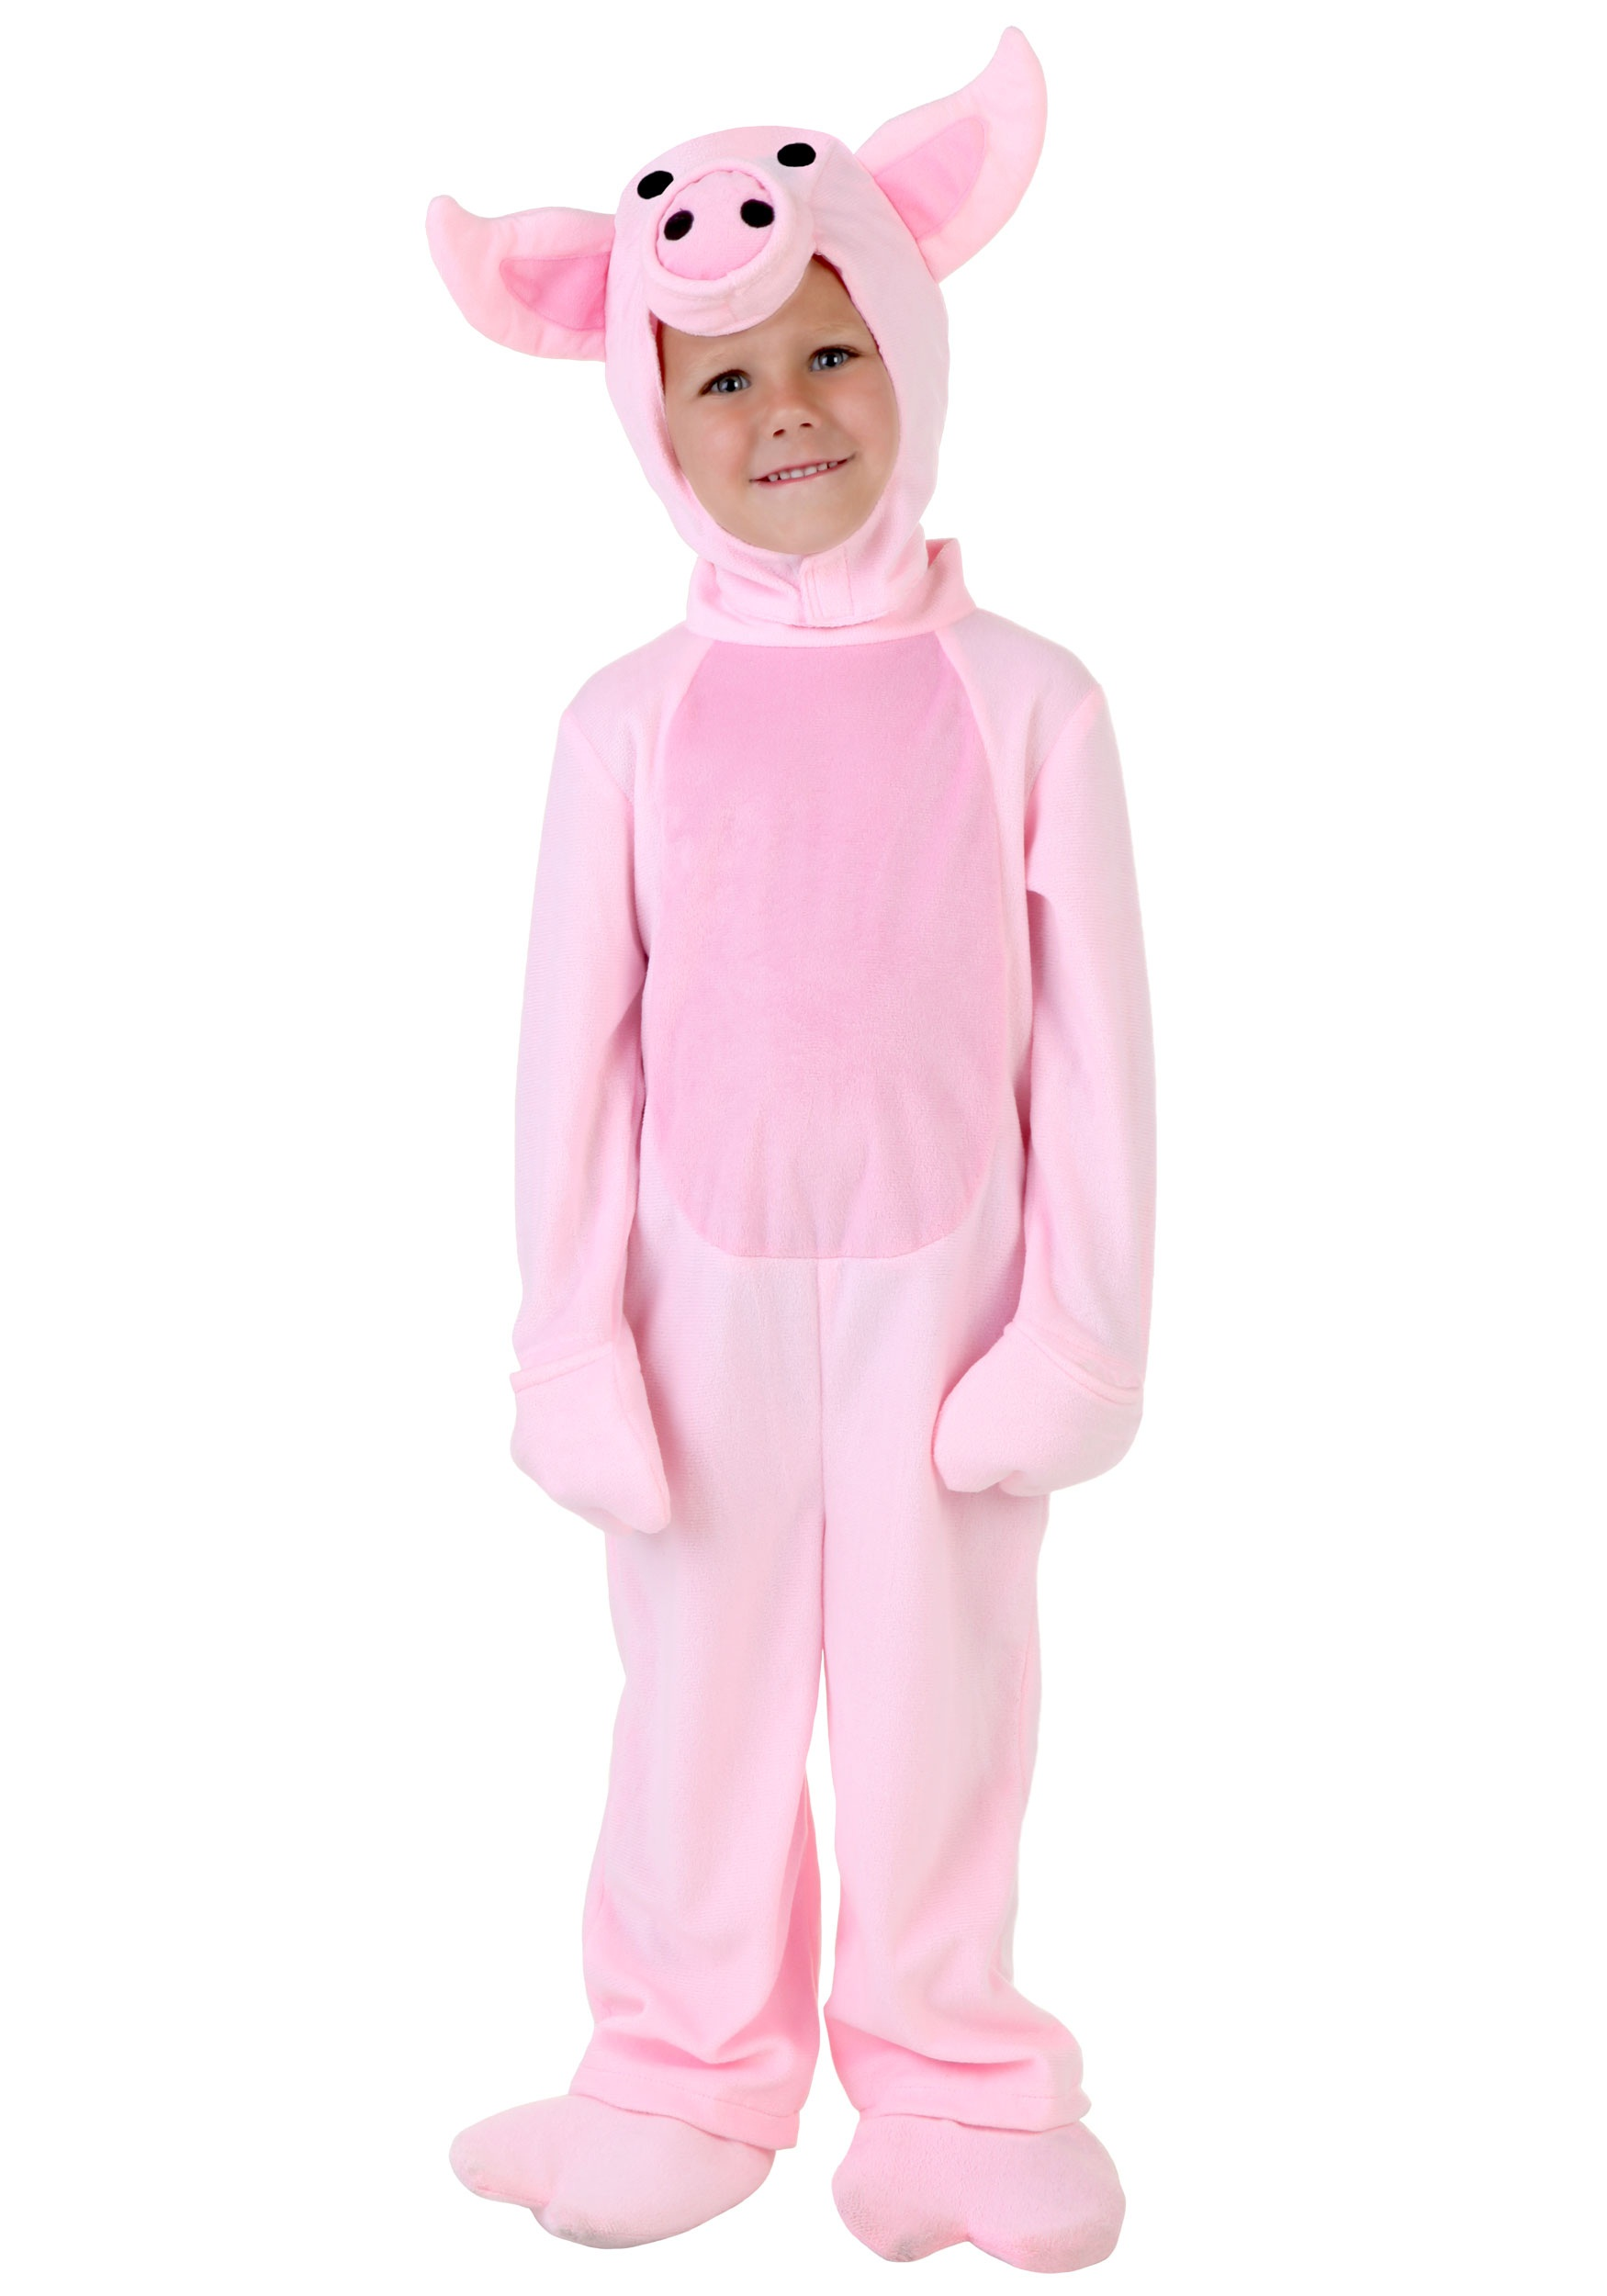 f14d24d5379d Pig Costumes For Adults   Kids - HalloweenCostumes.com